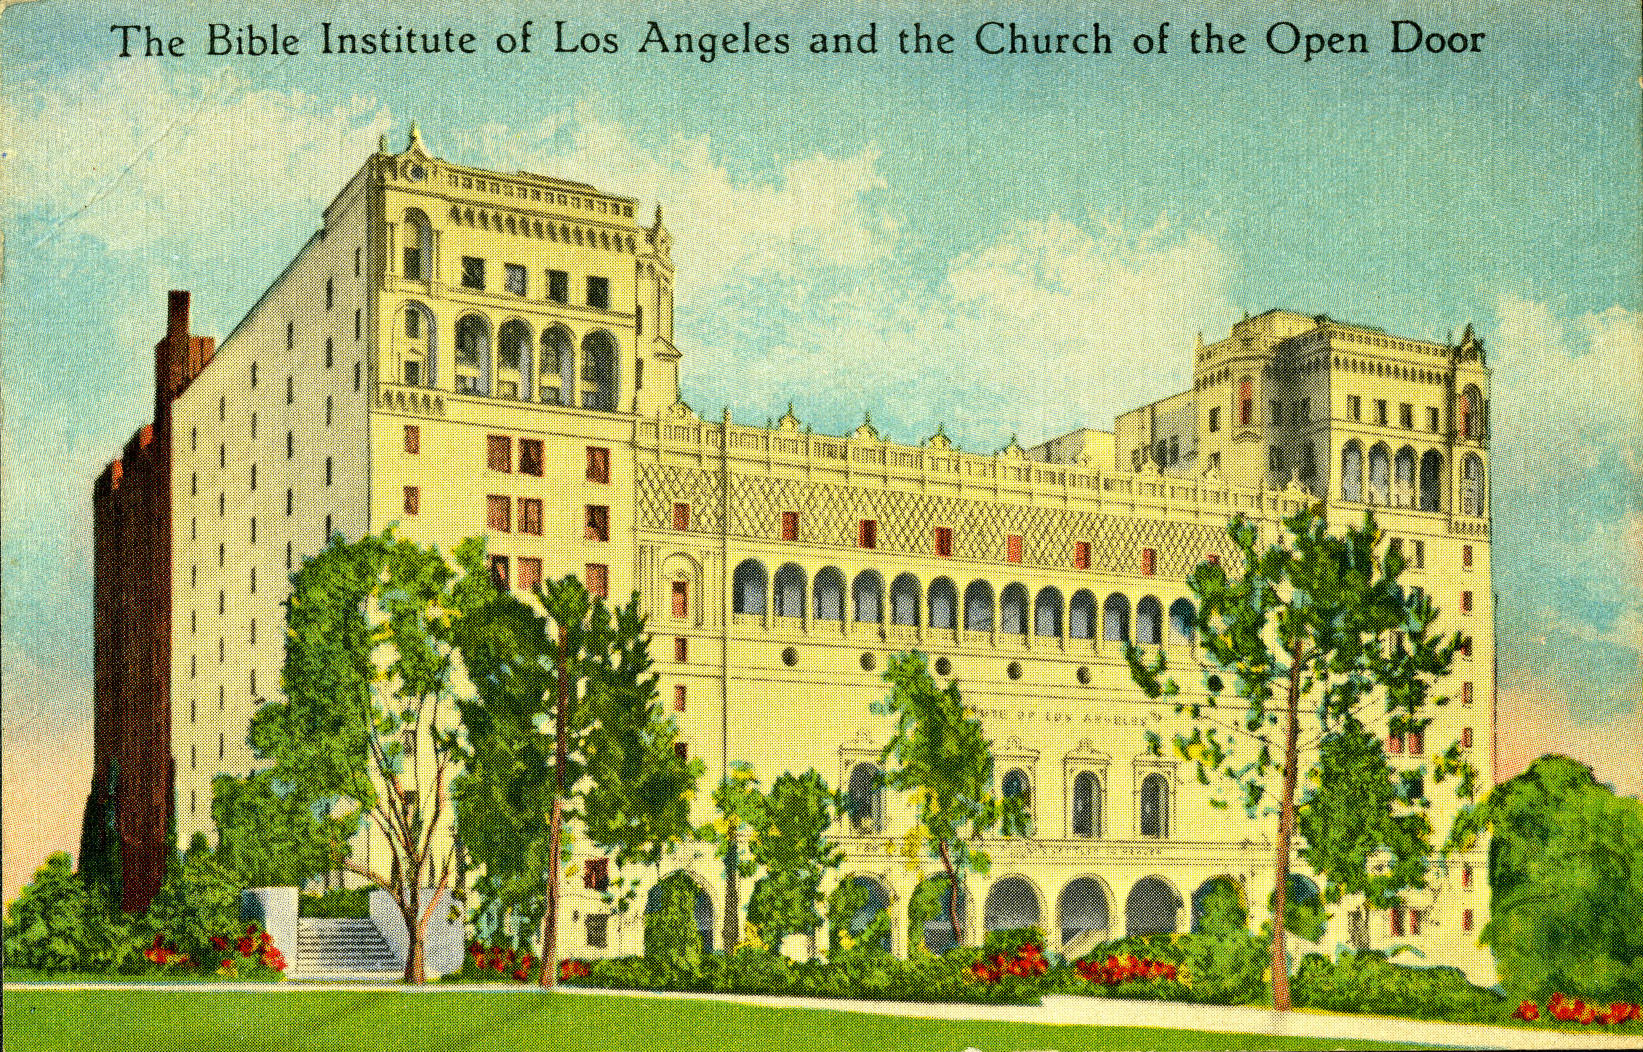 The Bible Institute of Los Angeles and the Church of the Open Door